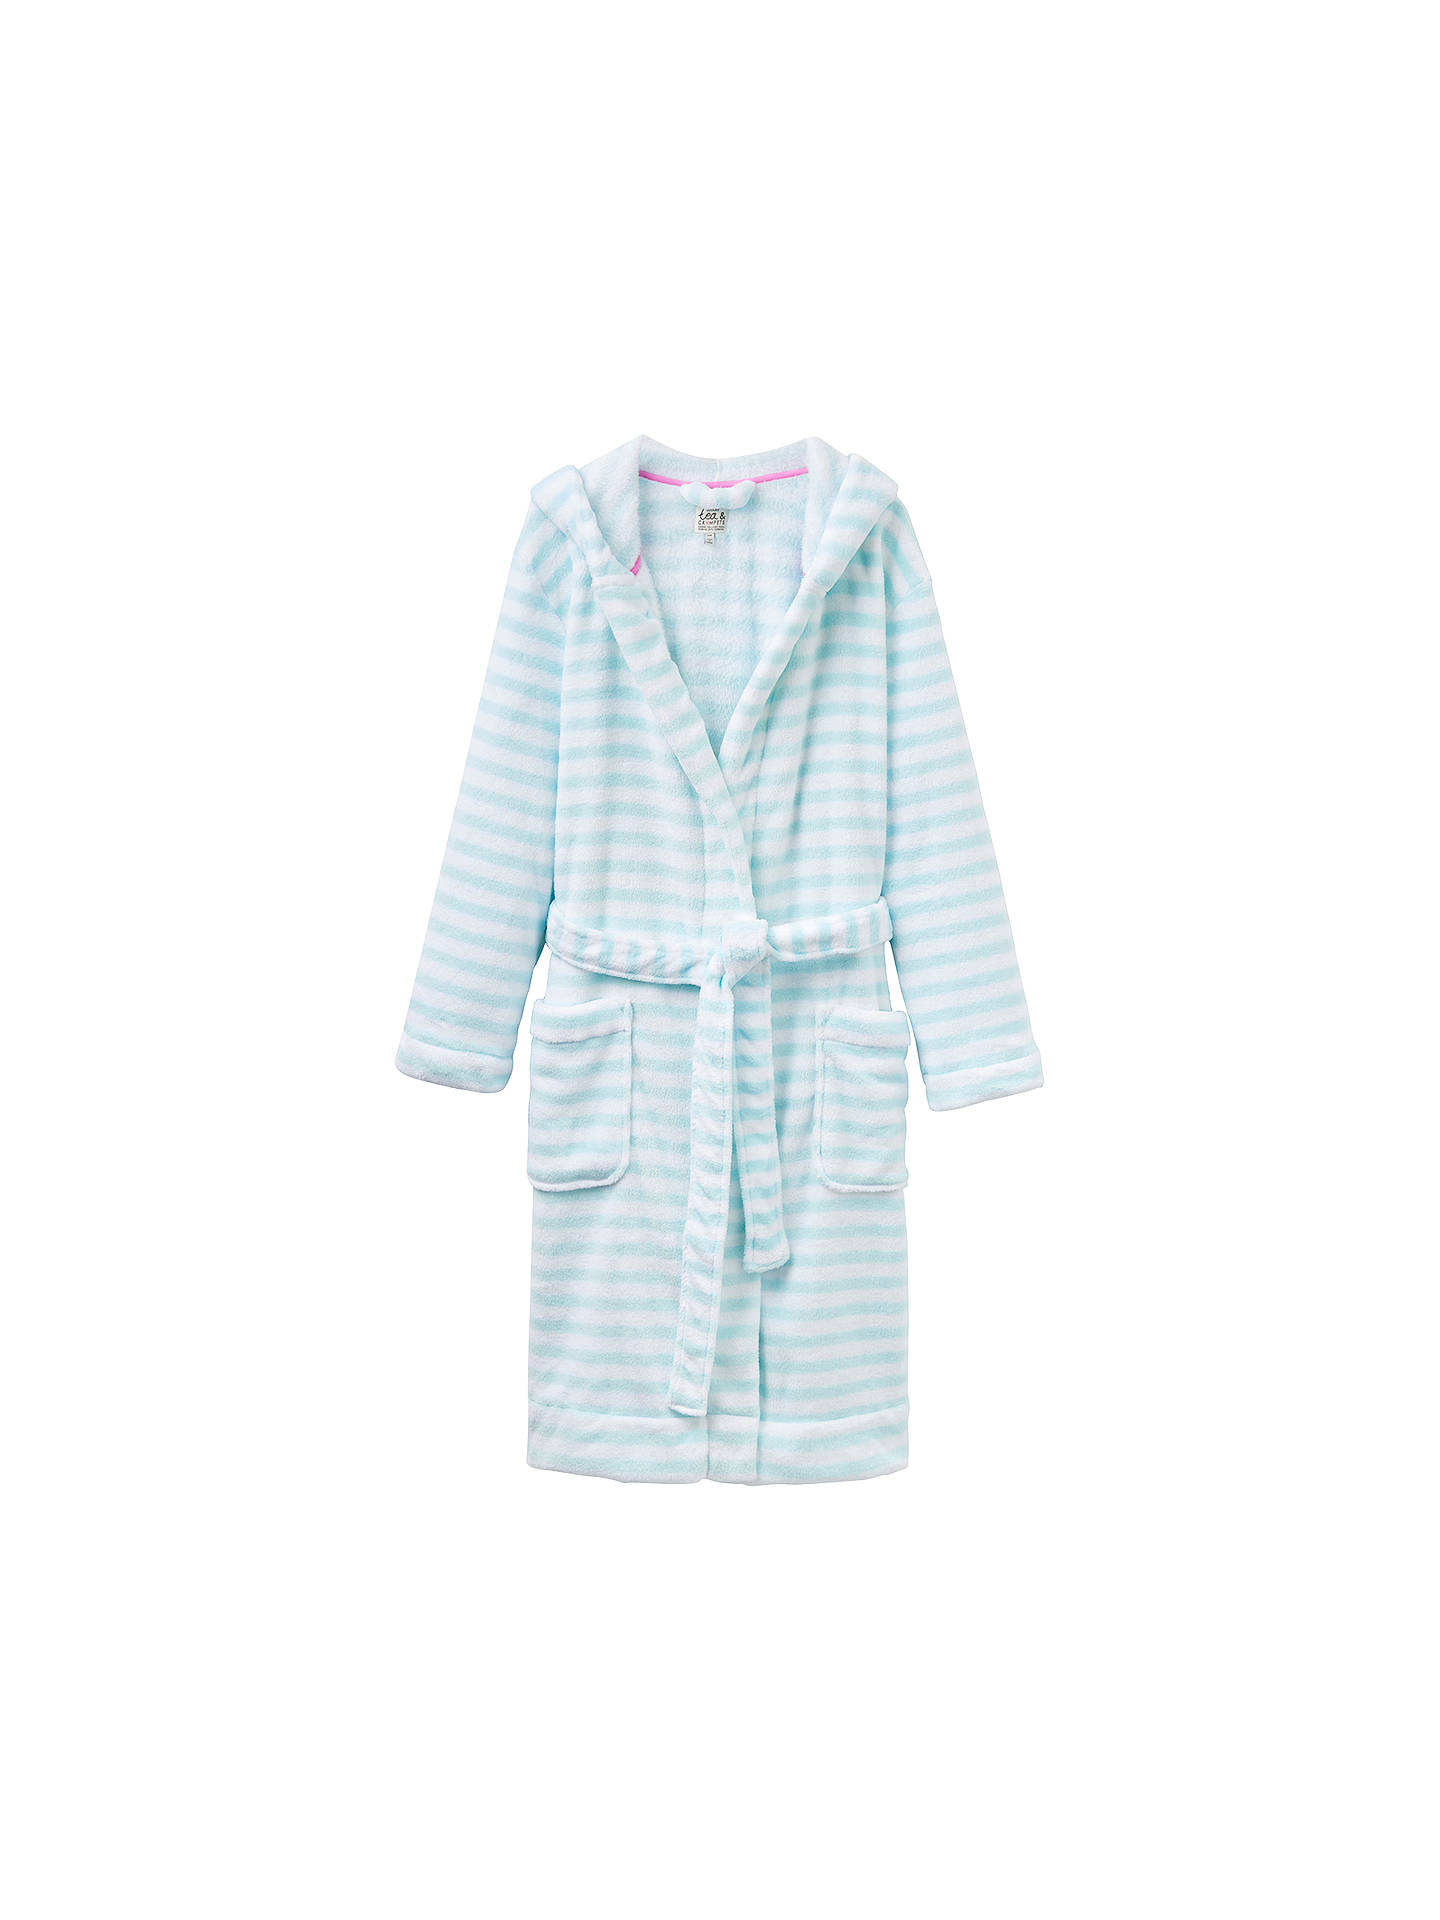 Joules Rita Dressing Gown, Aqua Stripe at John Lewis & Partners